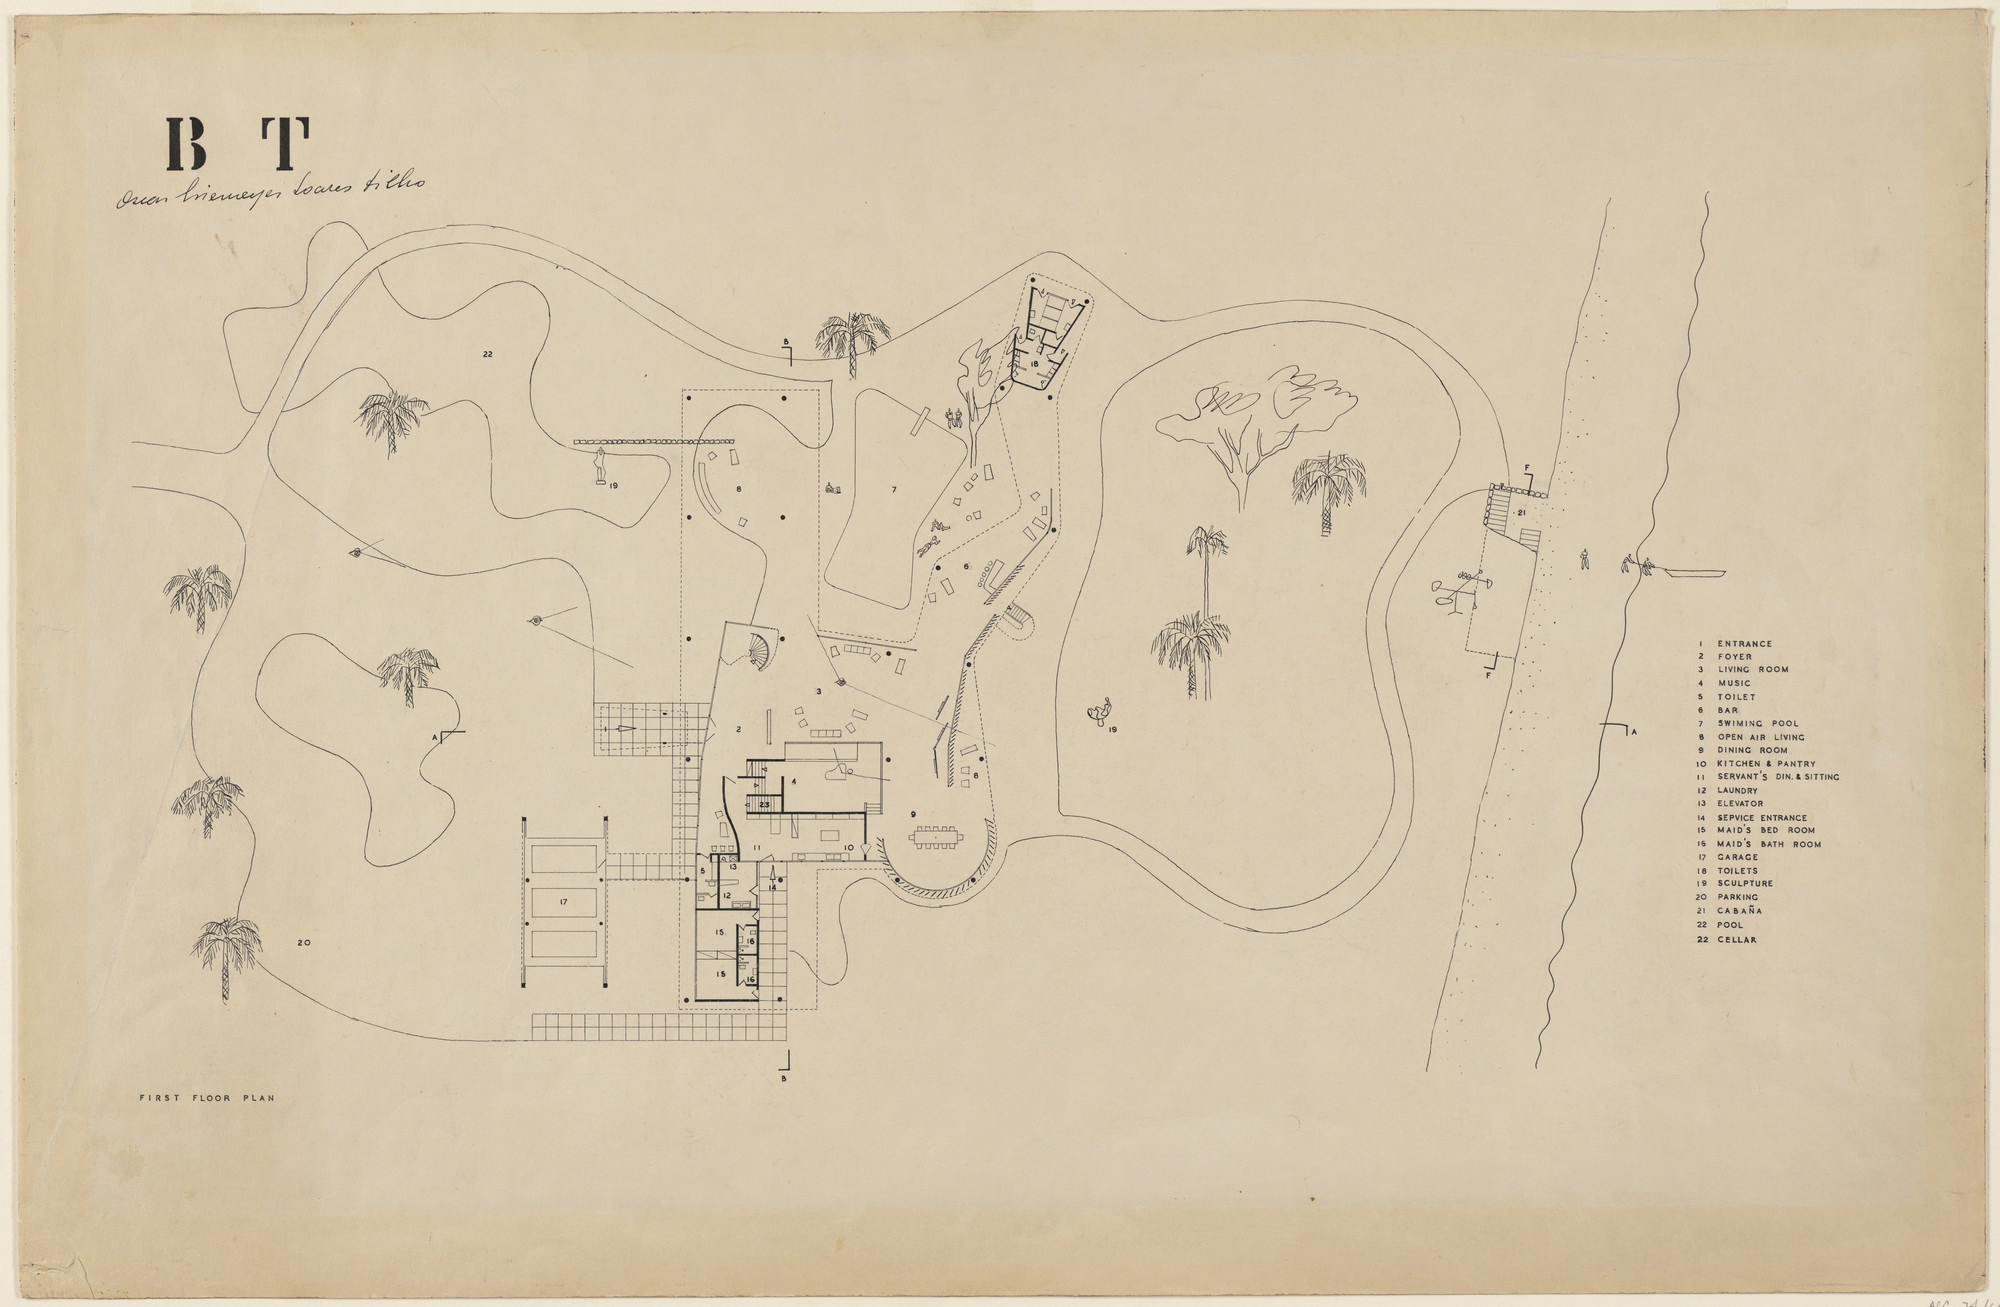 Oscar Niemeyer, Roberto Burle Marx. Beach House for Mr. and Mrs. Burton Tremaine, project, Santa Barbara, California (Plans of first floor and garden). 1948